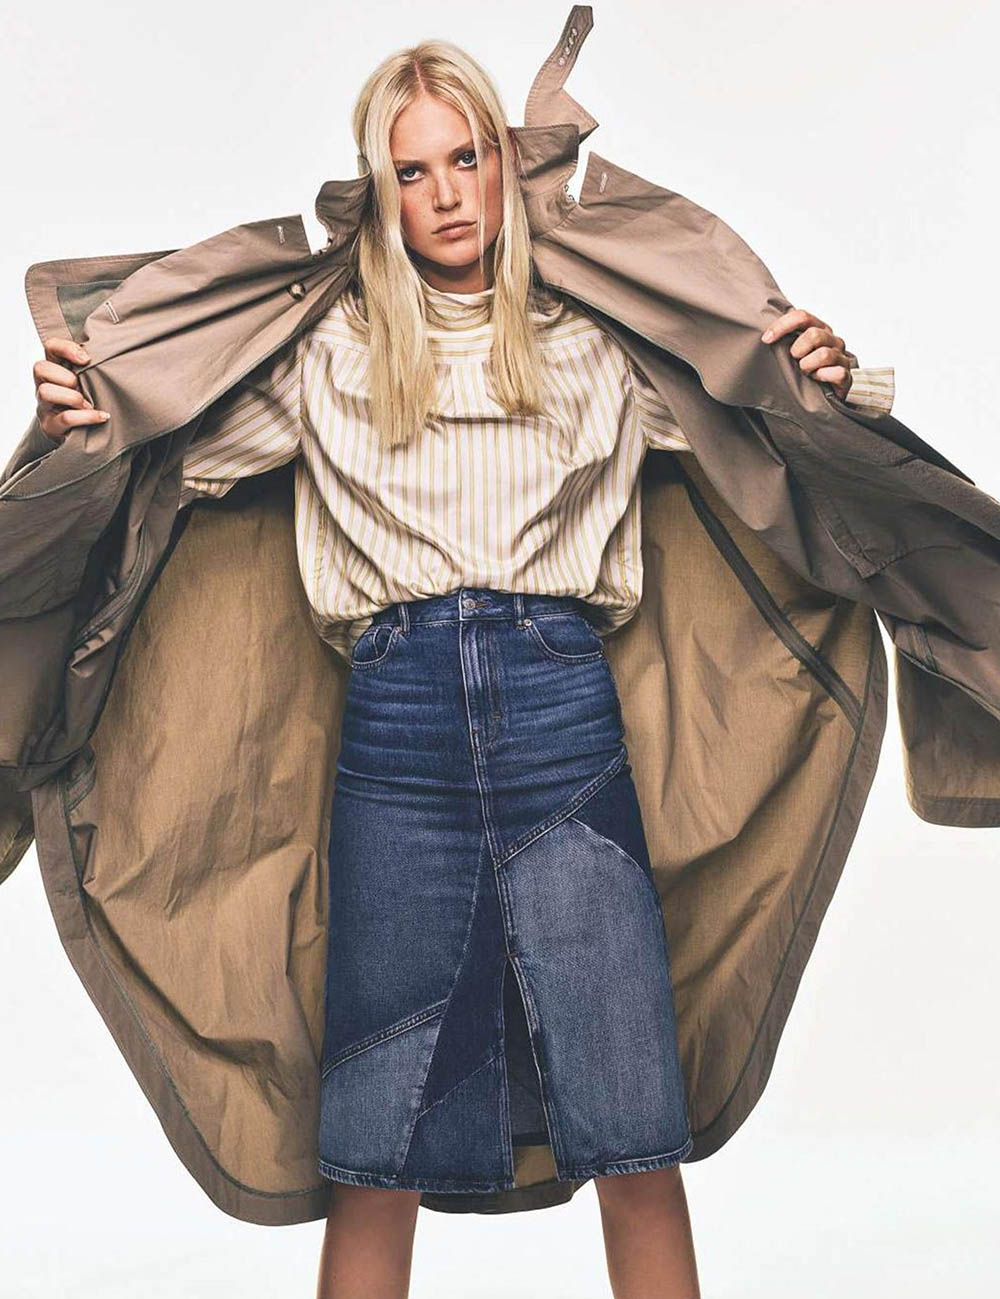 Charlene Högger by Gregory Derkenne for Elle France October 2nd, 2020